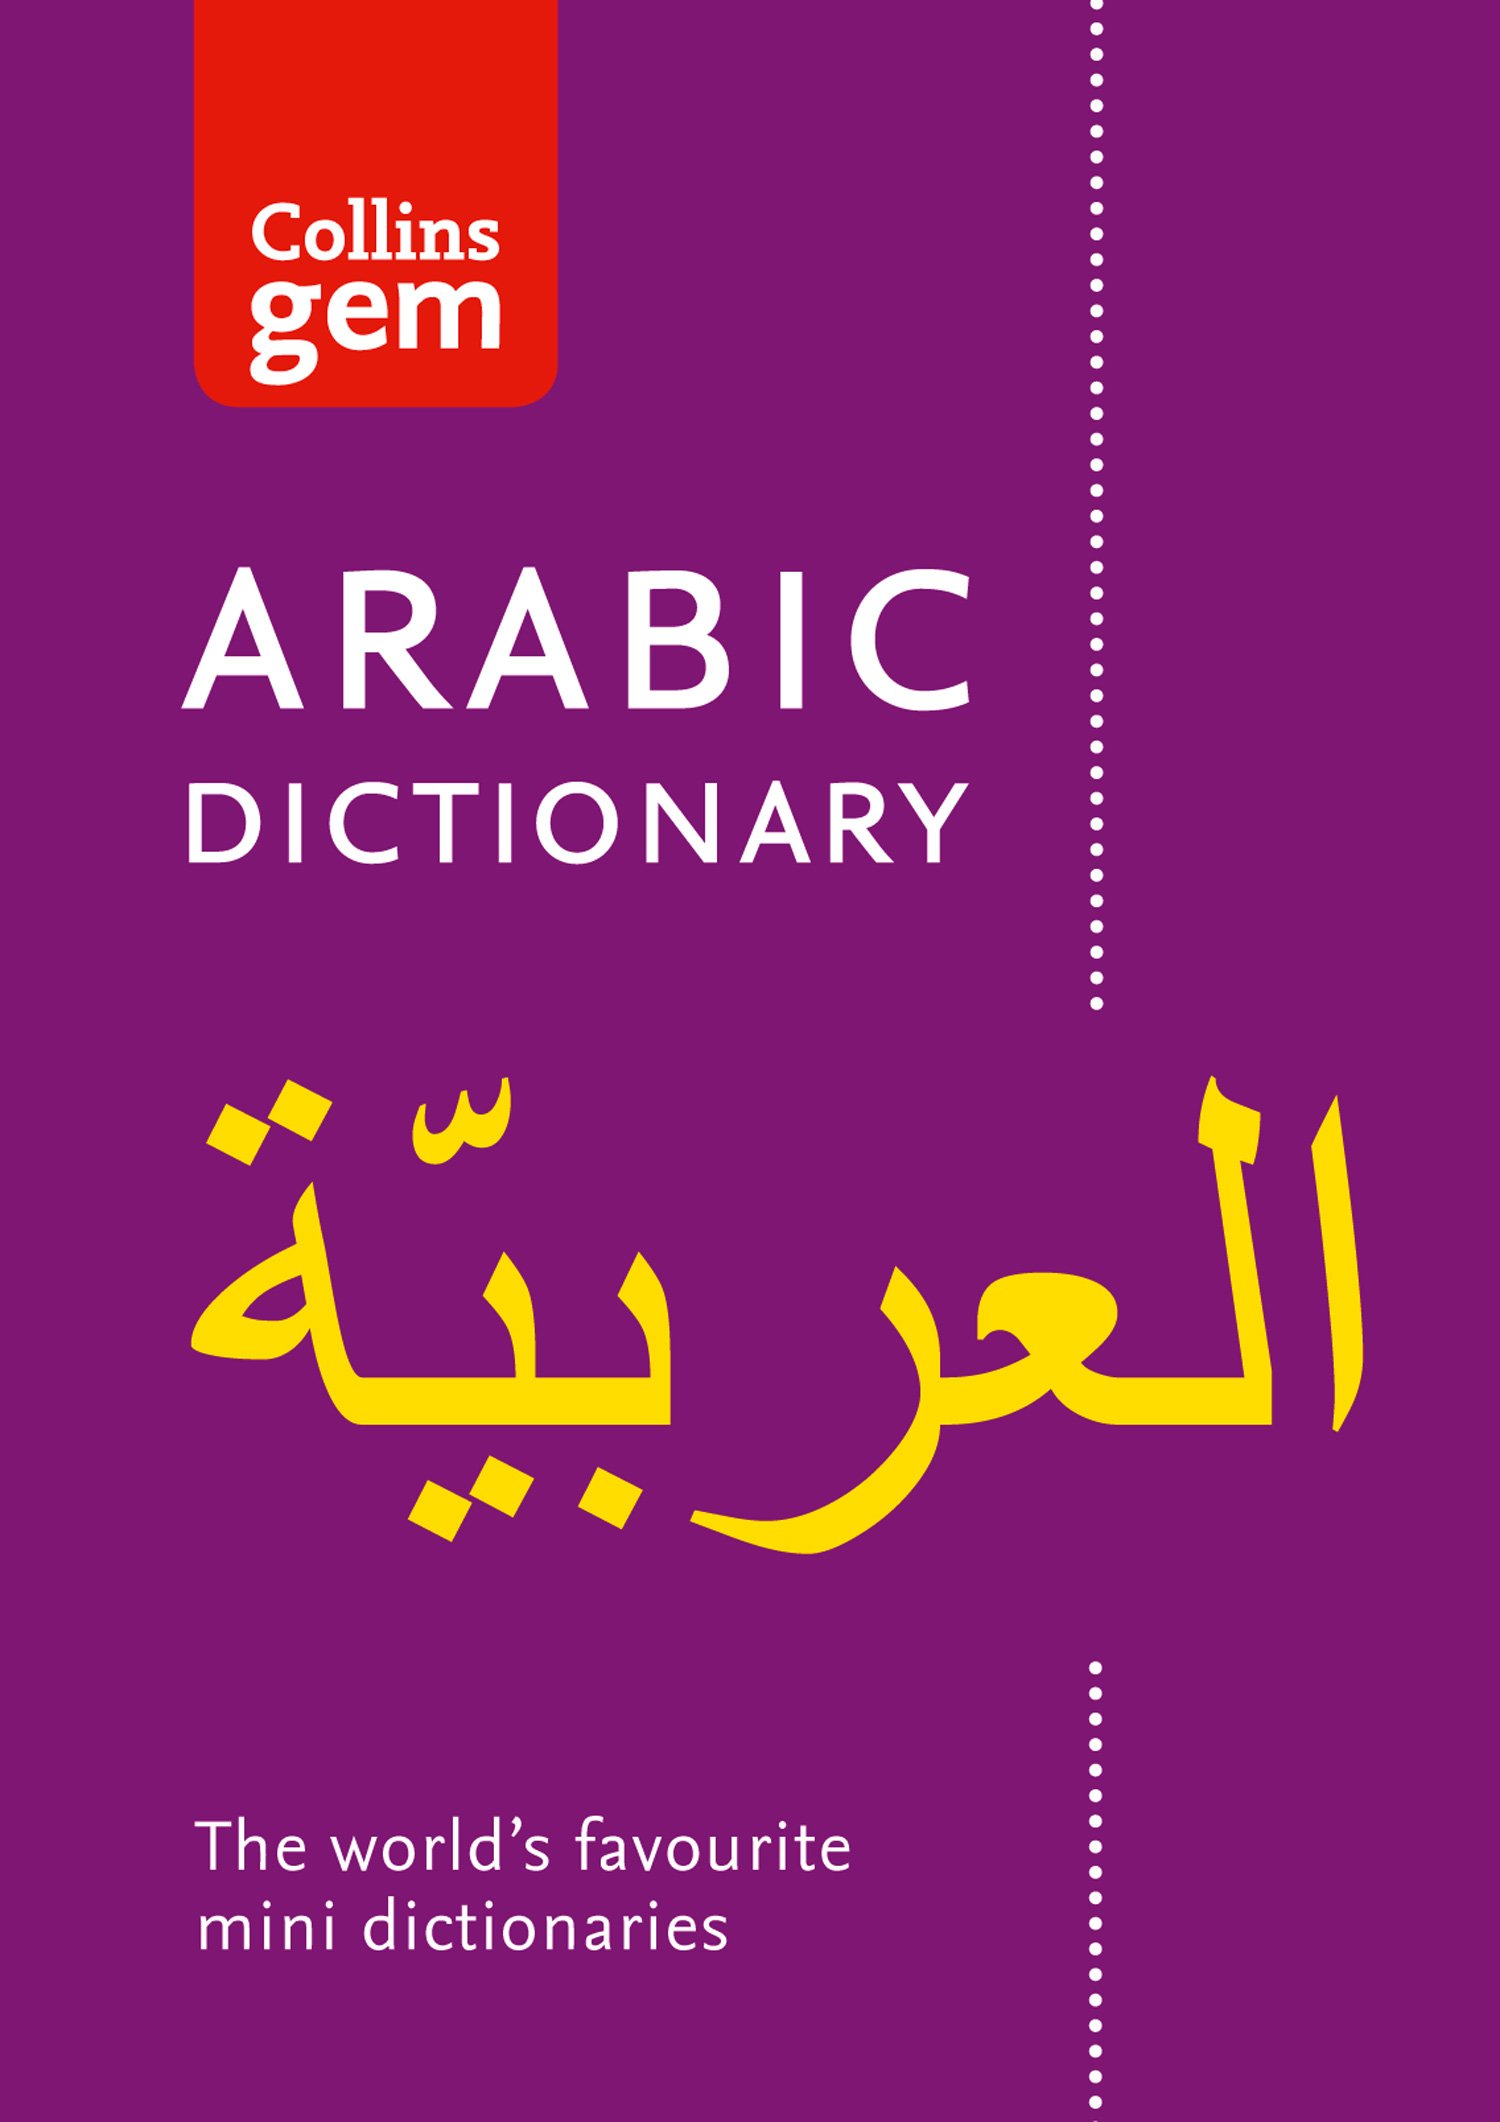 Collins gem arabic dictionary collins dictionaries 9780007324750 collins gem arabic dictionary collins dictionaries 9780007324750 amazon books fandeluxe Image collections